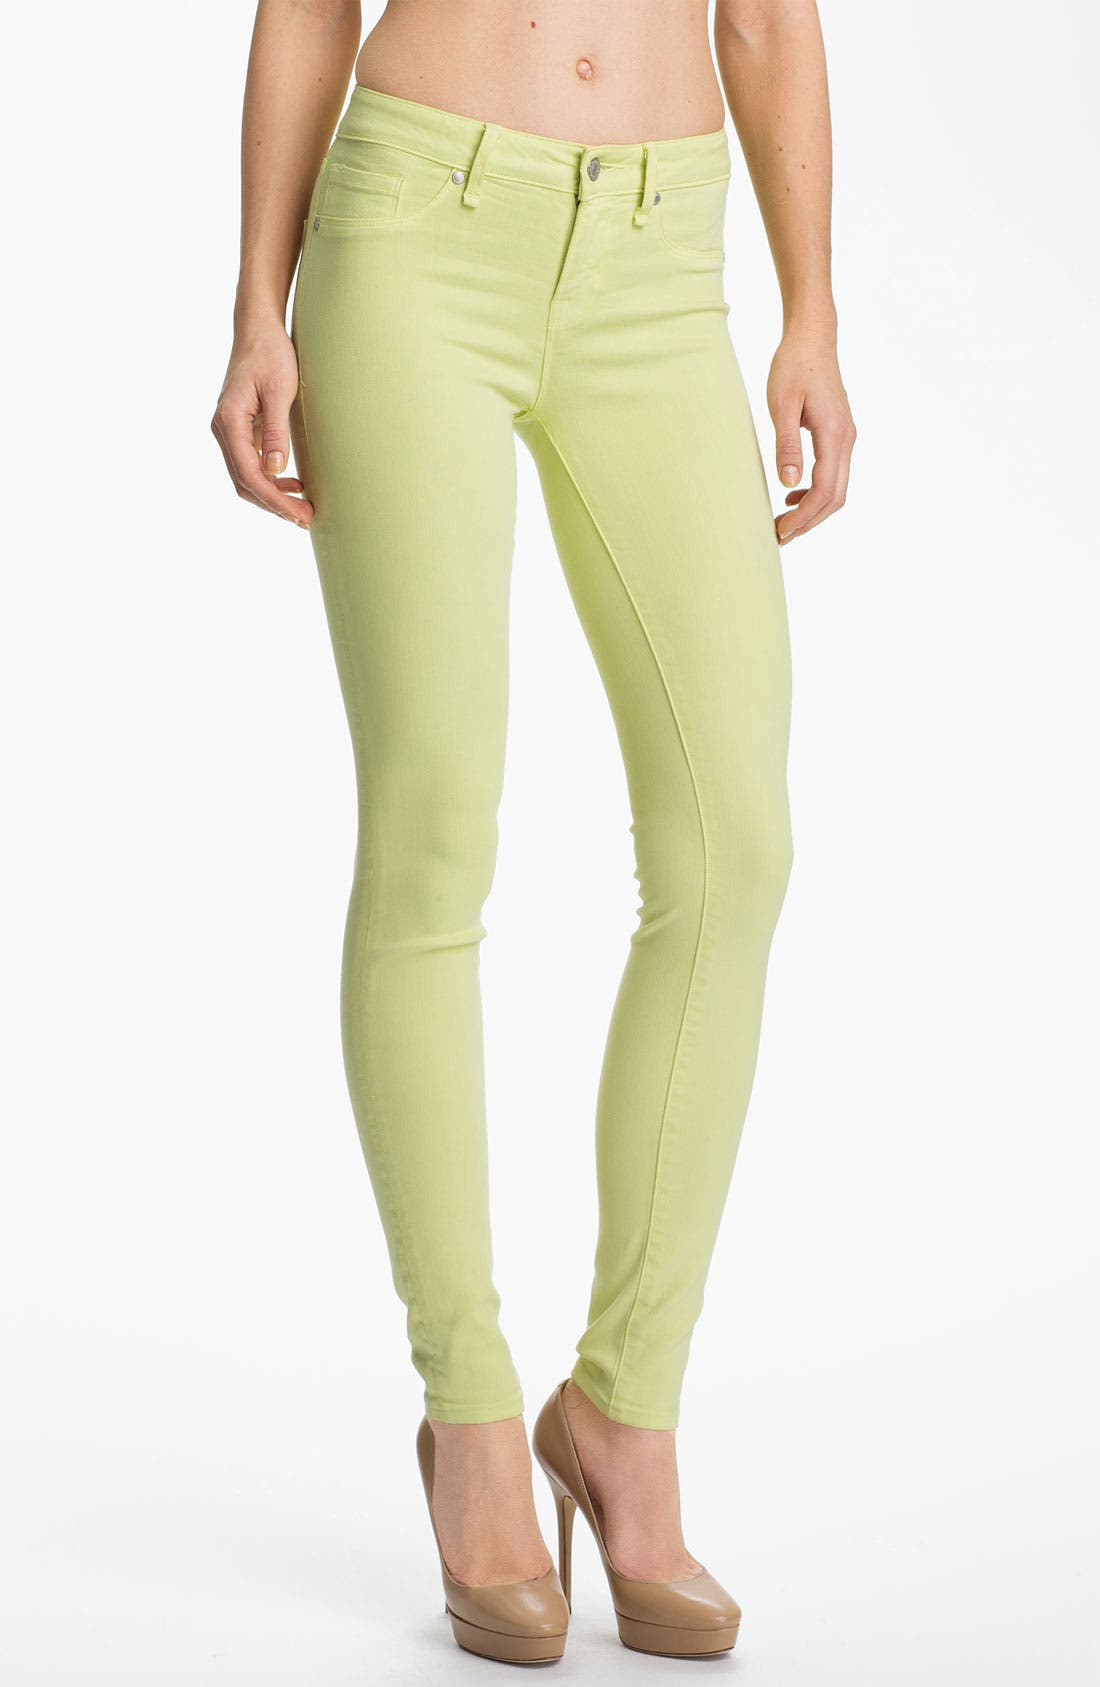 Alternate Image 1 Selected - MARC BY MARC JACOBS 'Stick' Skinny Jeans (Lemon Sorbet)